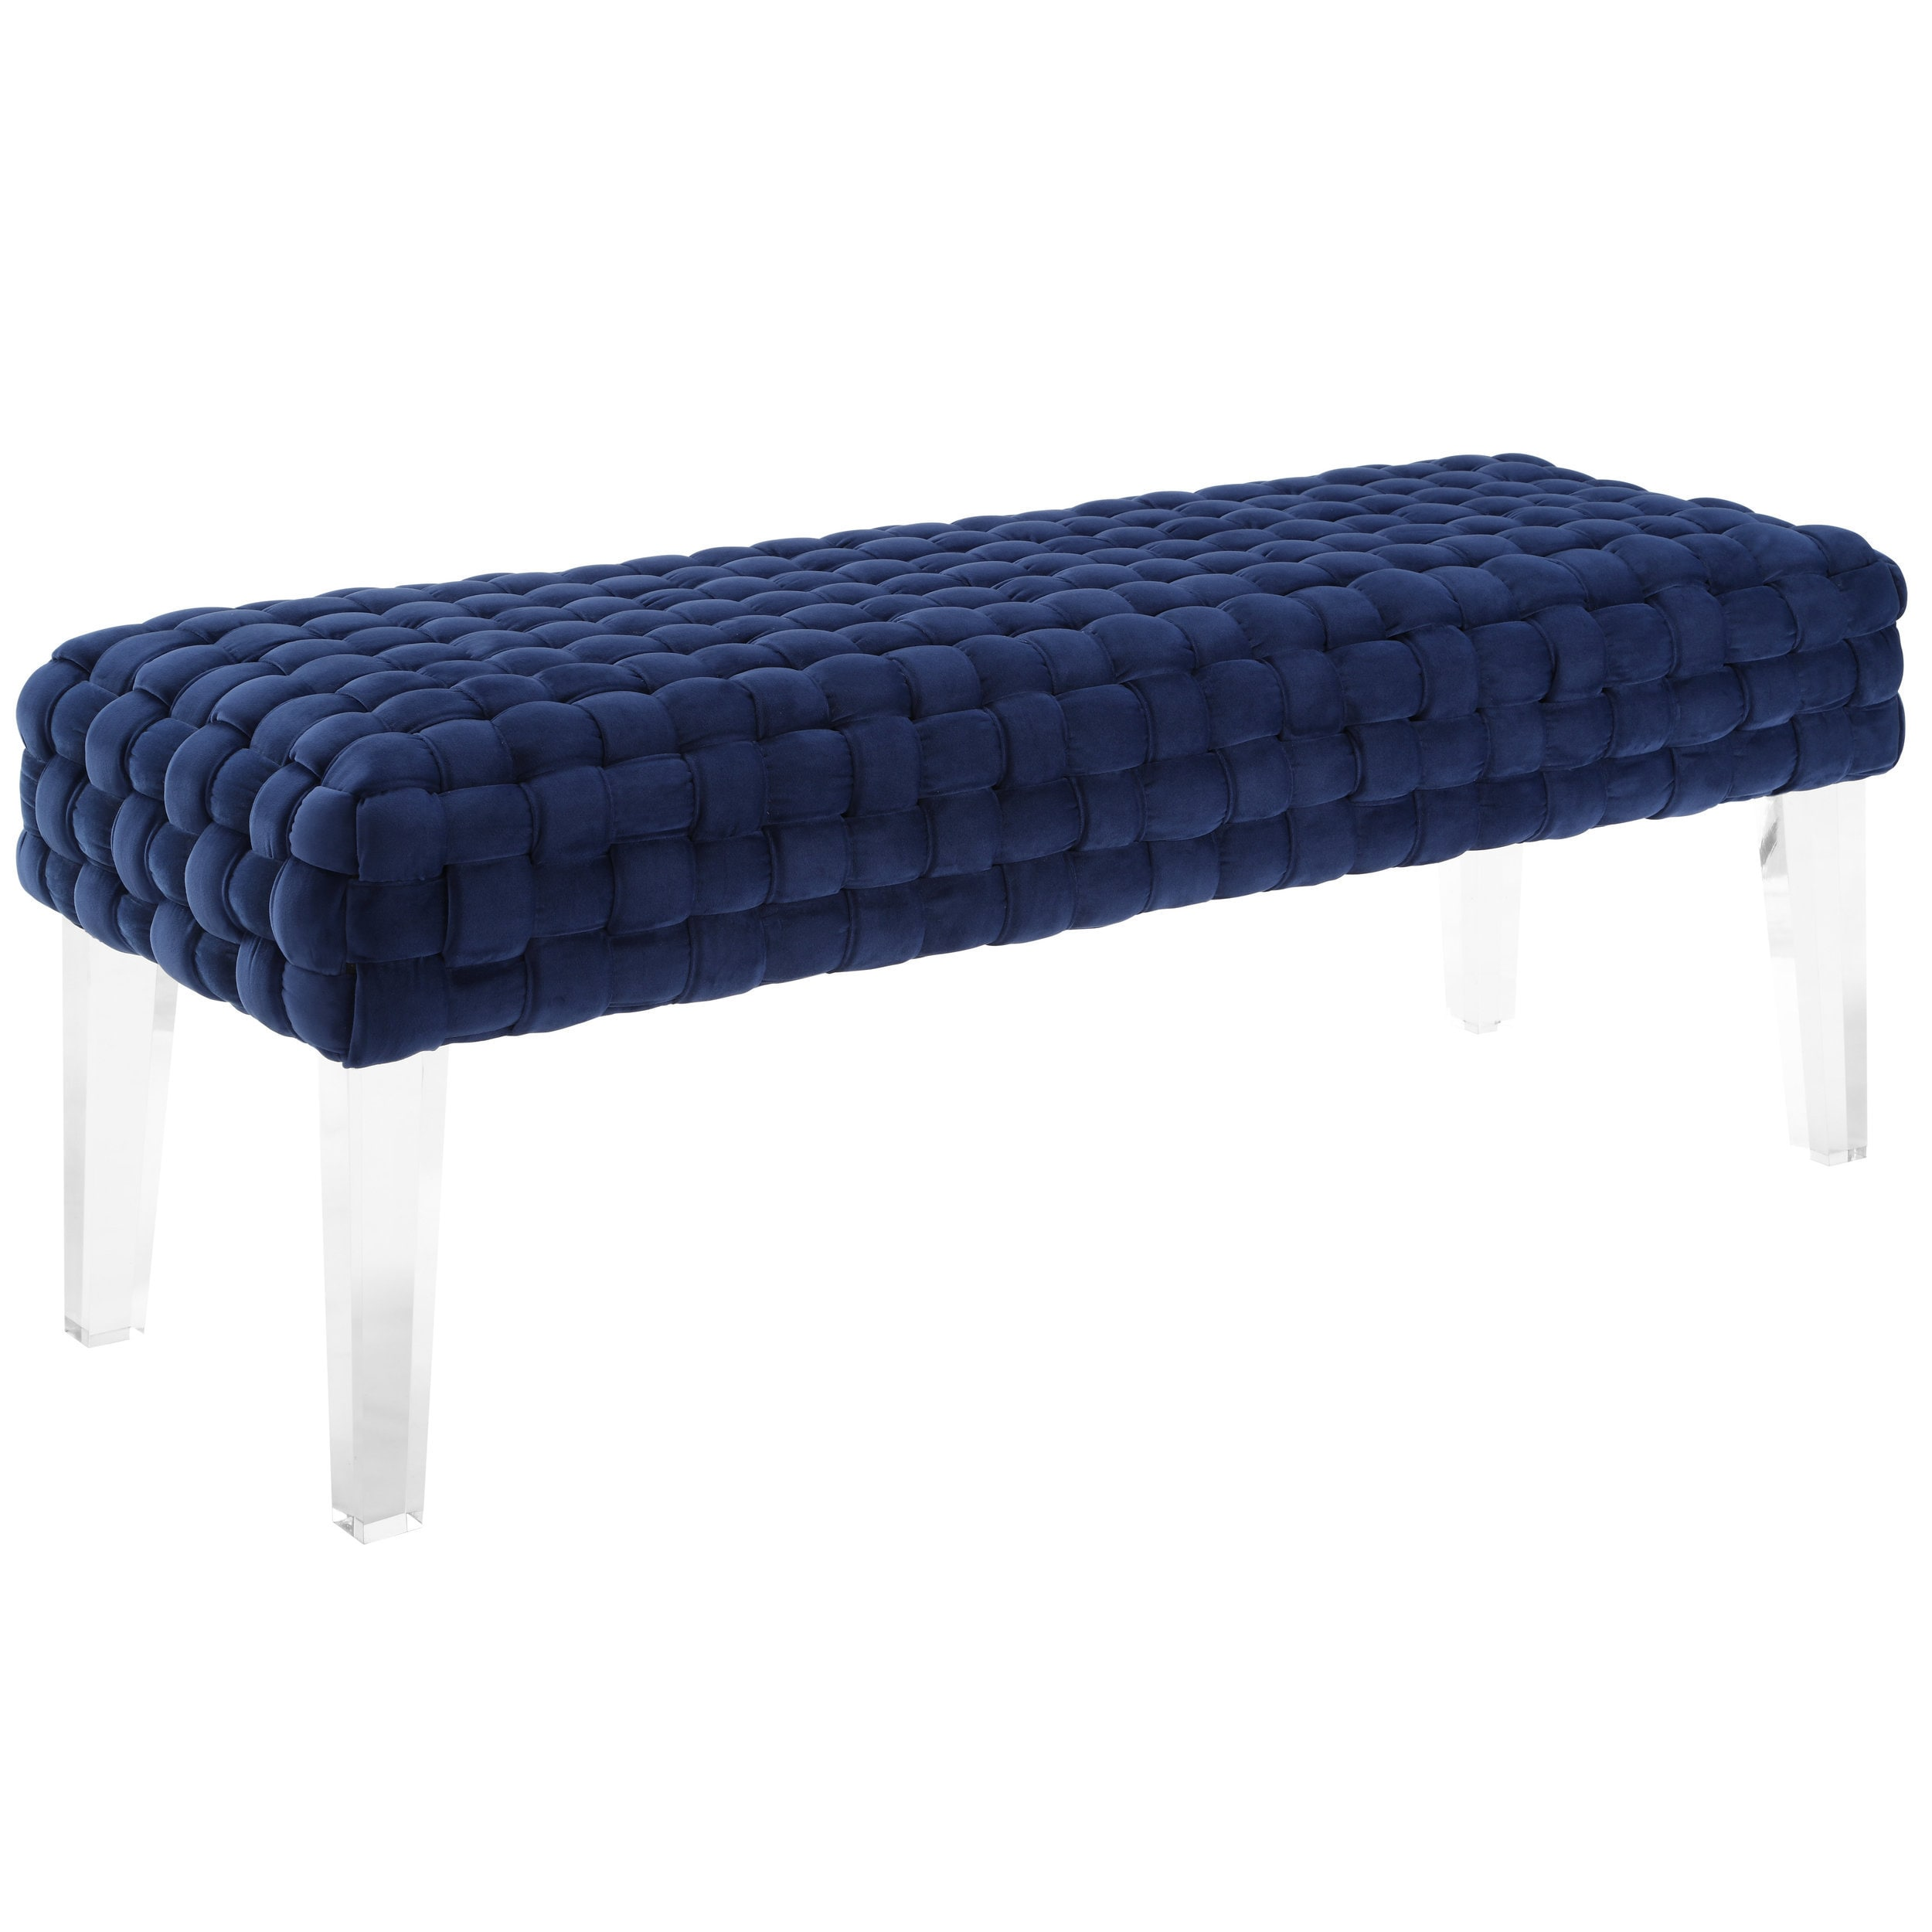 fabric plaid gold x il legs check brass fullxfull ottoman with navy bench upholstered custom buffalo products